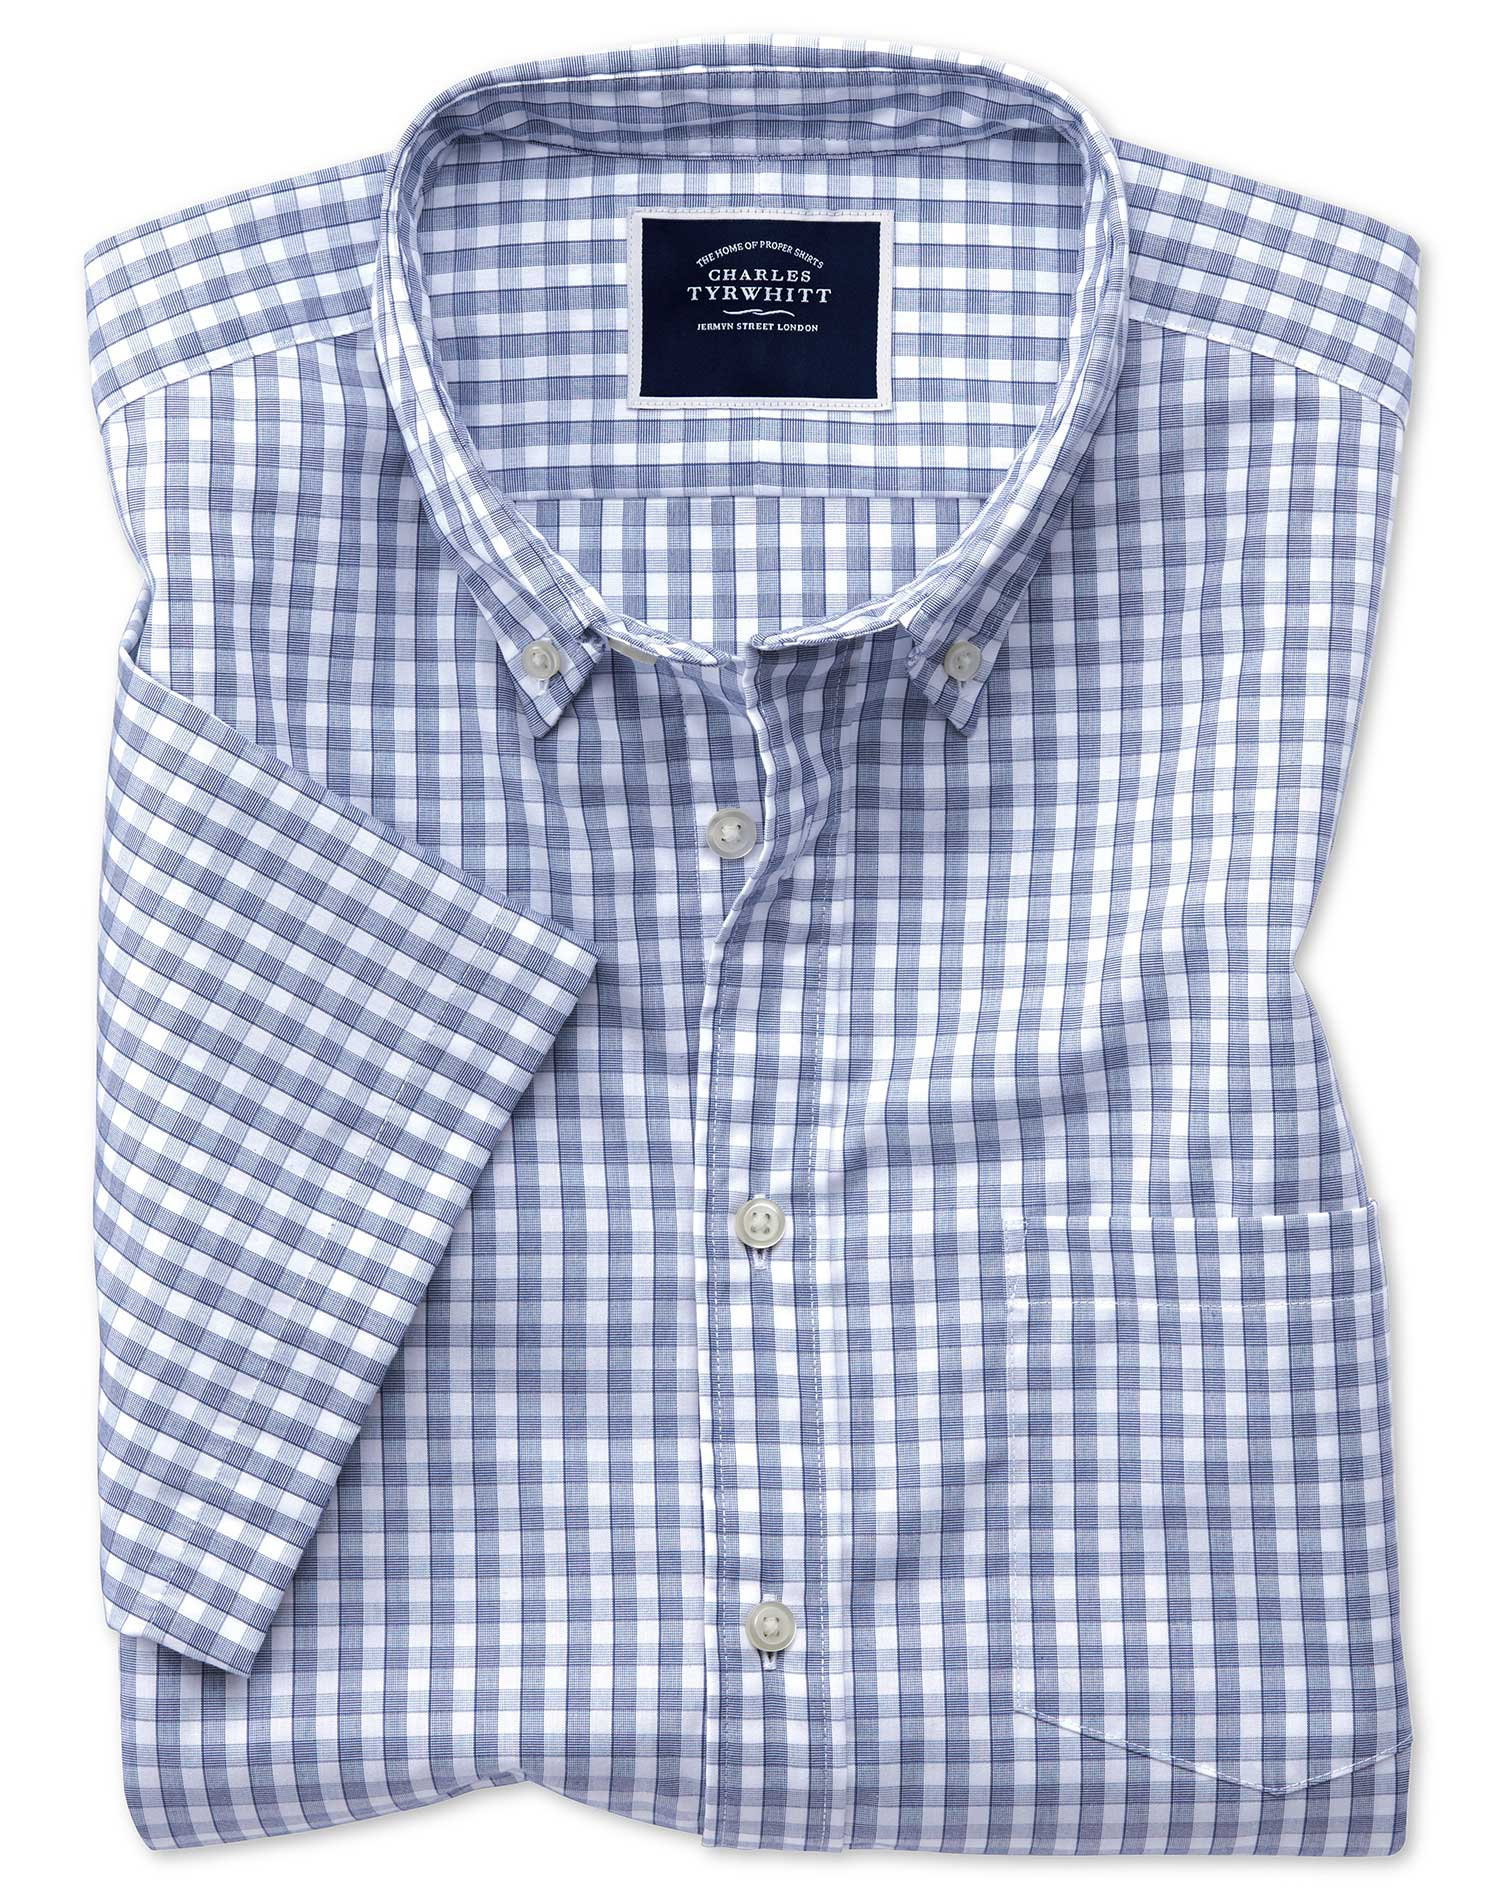 Classic Fit Navy Short Sleeve Gingham Soft Washed Non-Iron Tyrwhitt Cool Cotton Shirt Single Cuff Si